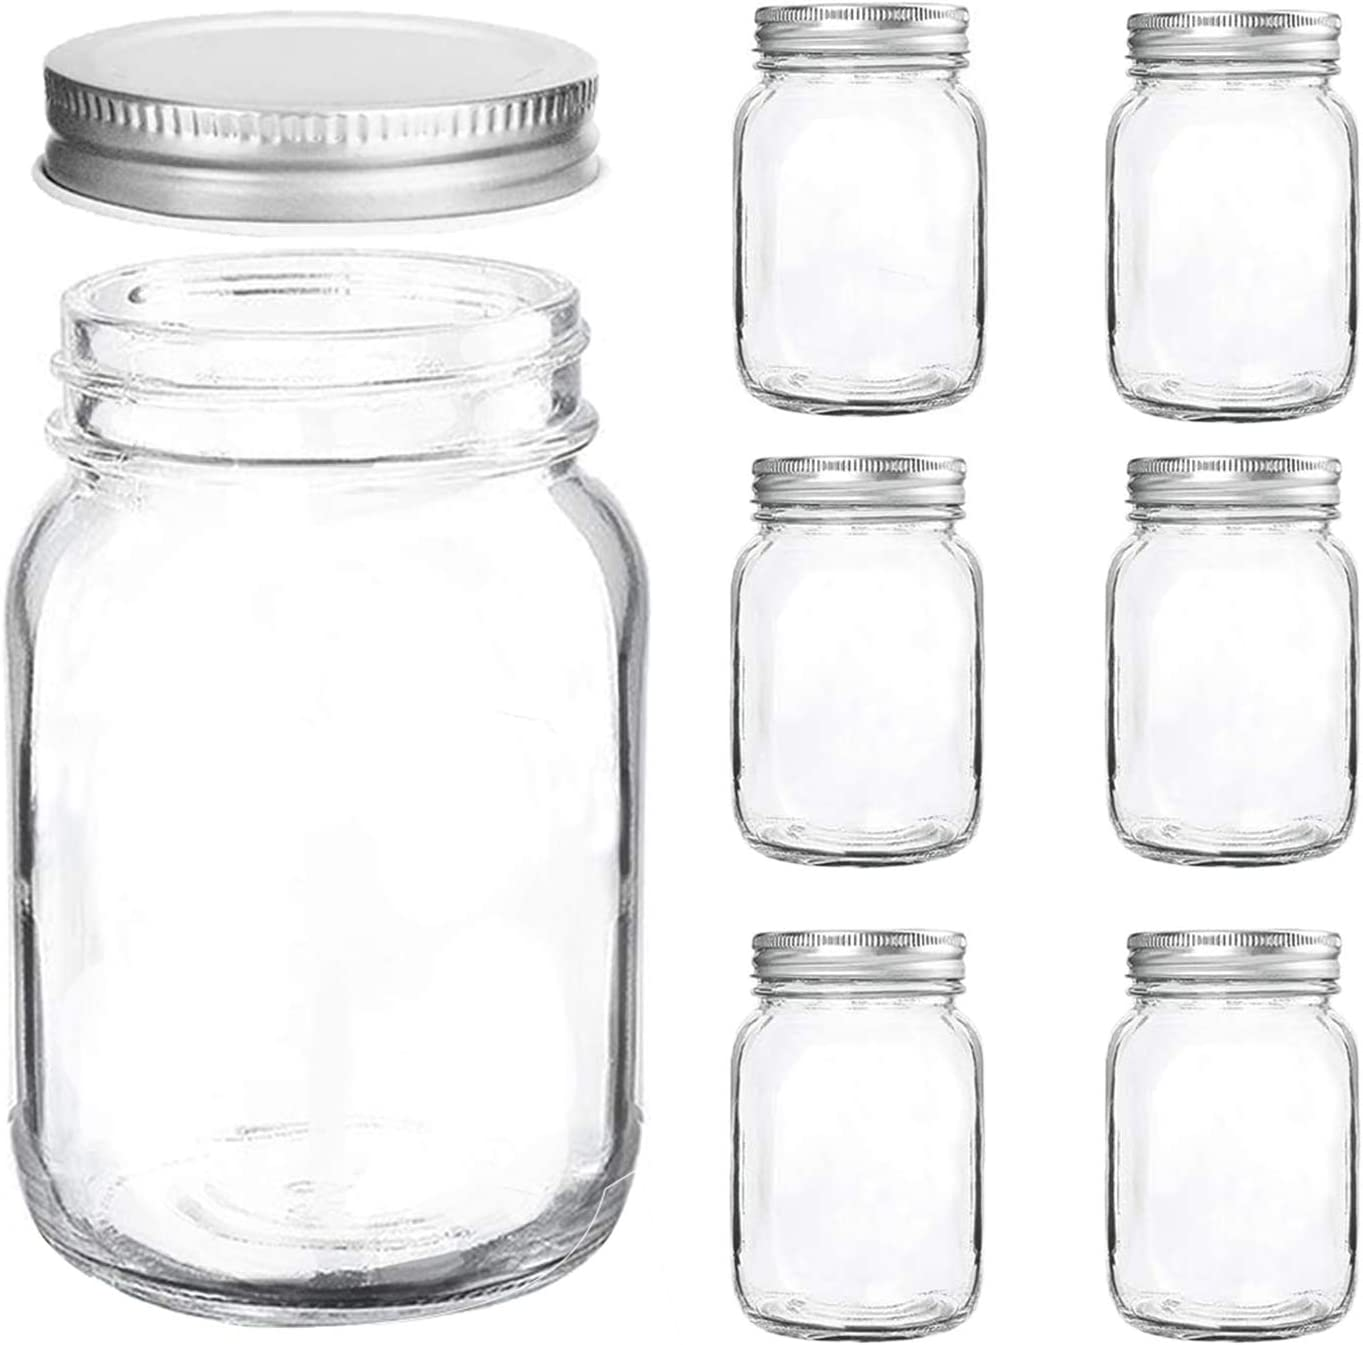 Mason Jars Regular Mouth - 16 oz Clear Glass Jars with Silver Metal Lids for Sealing, Food Storage, Overnight Oats, Jelly, Dry Food, Jam,DIY Magnetic Spice Jars, 6 Pack